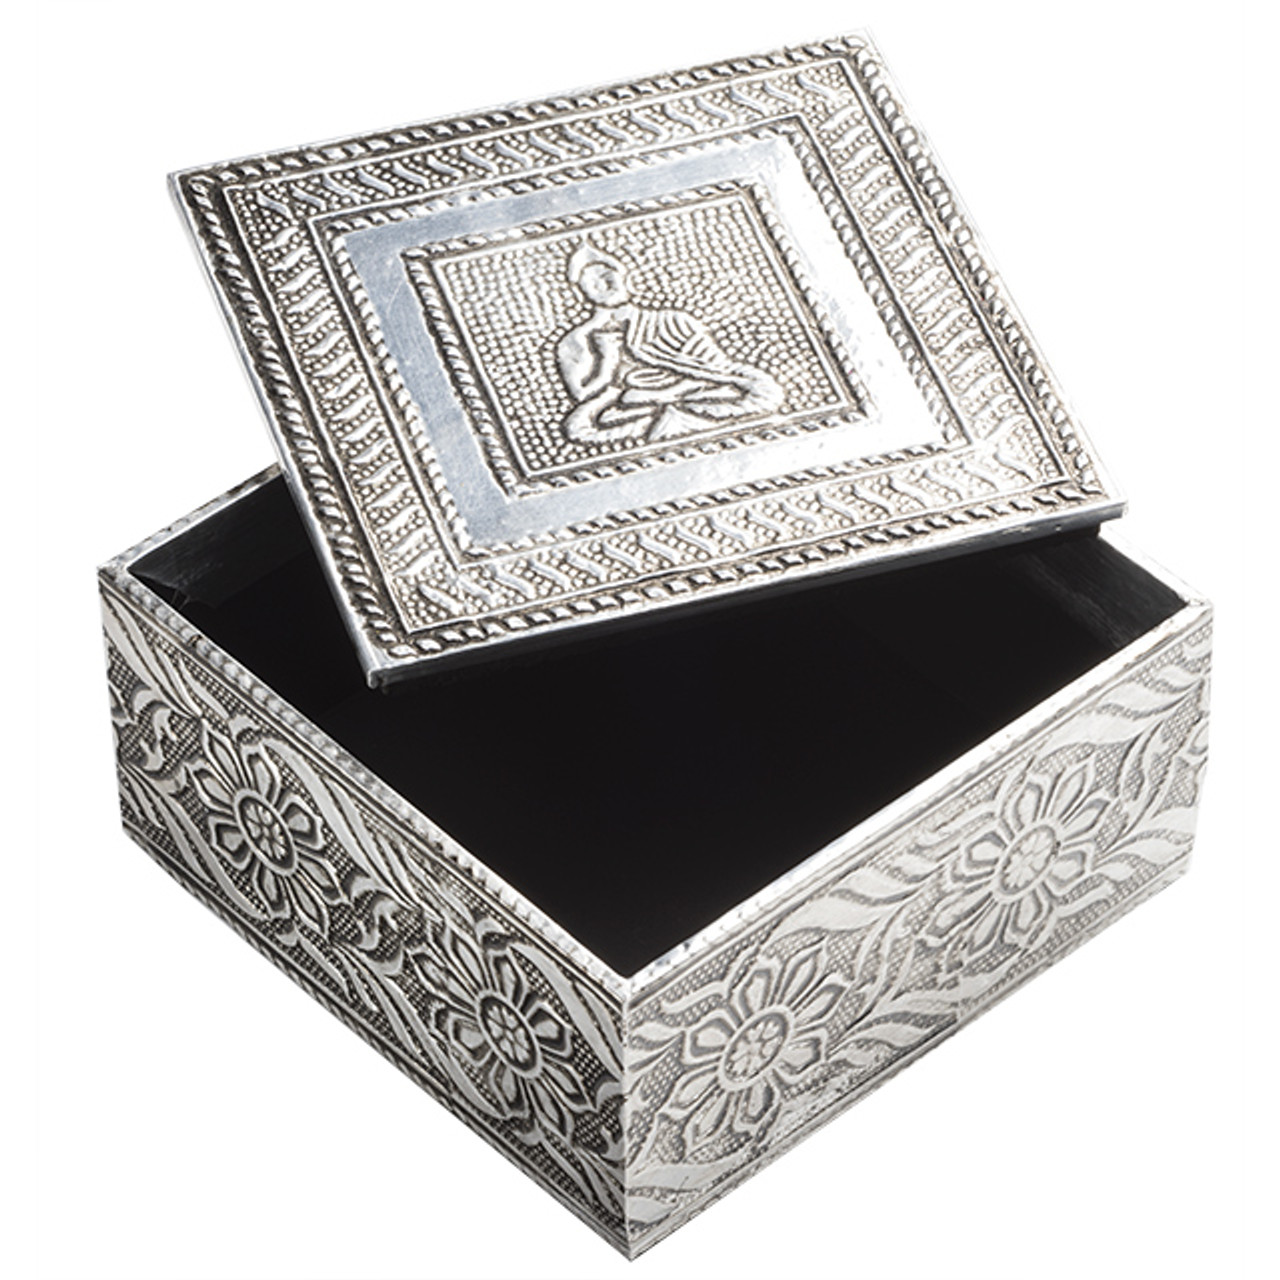 Embossed Buddha Design Box